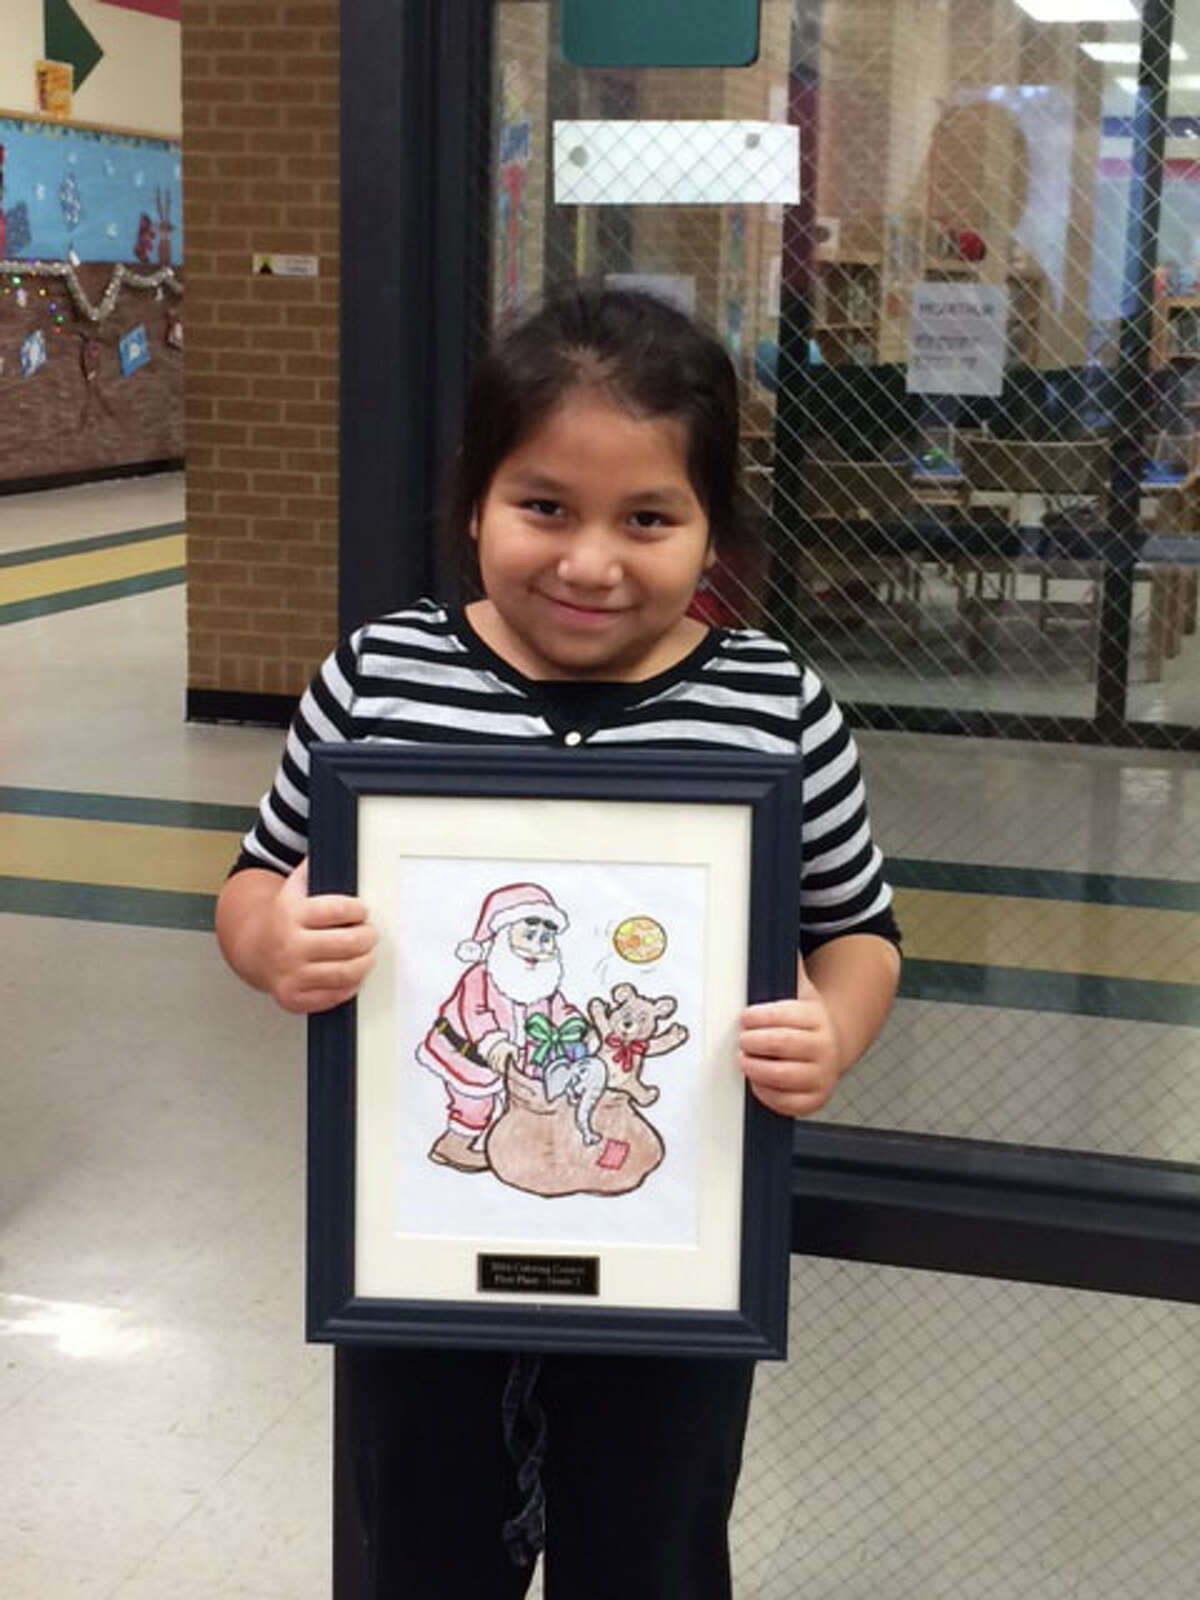 Genisis Lissette Chang, a second-grader at Southside Primary in Cleveland, won first place in her grade division of the Hometown Christmas Coloring Contest.